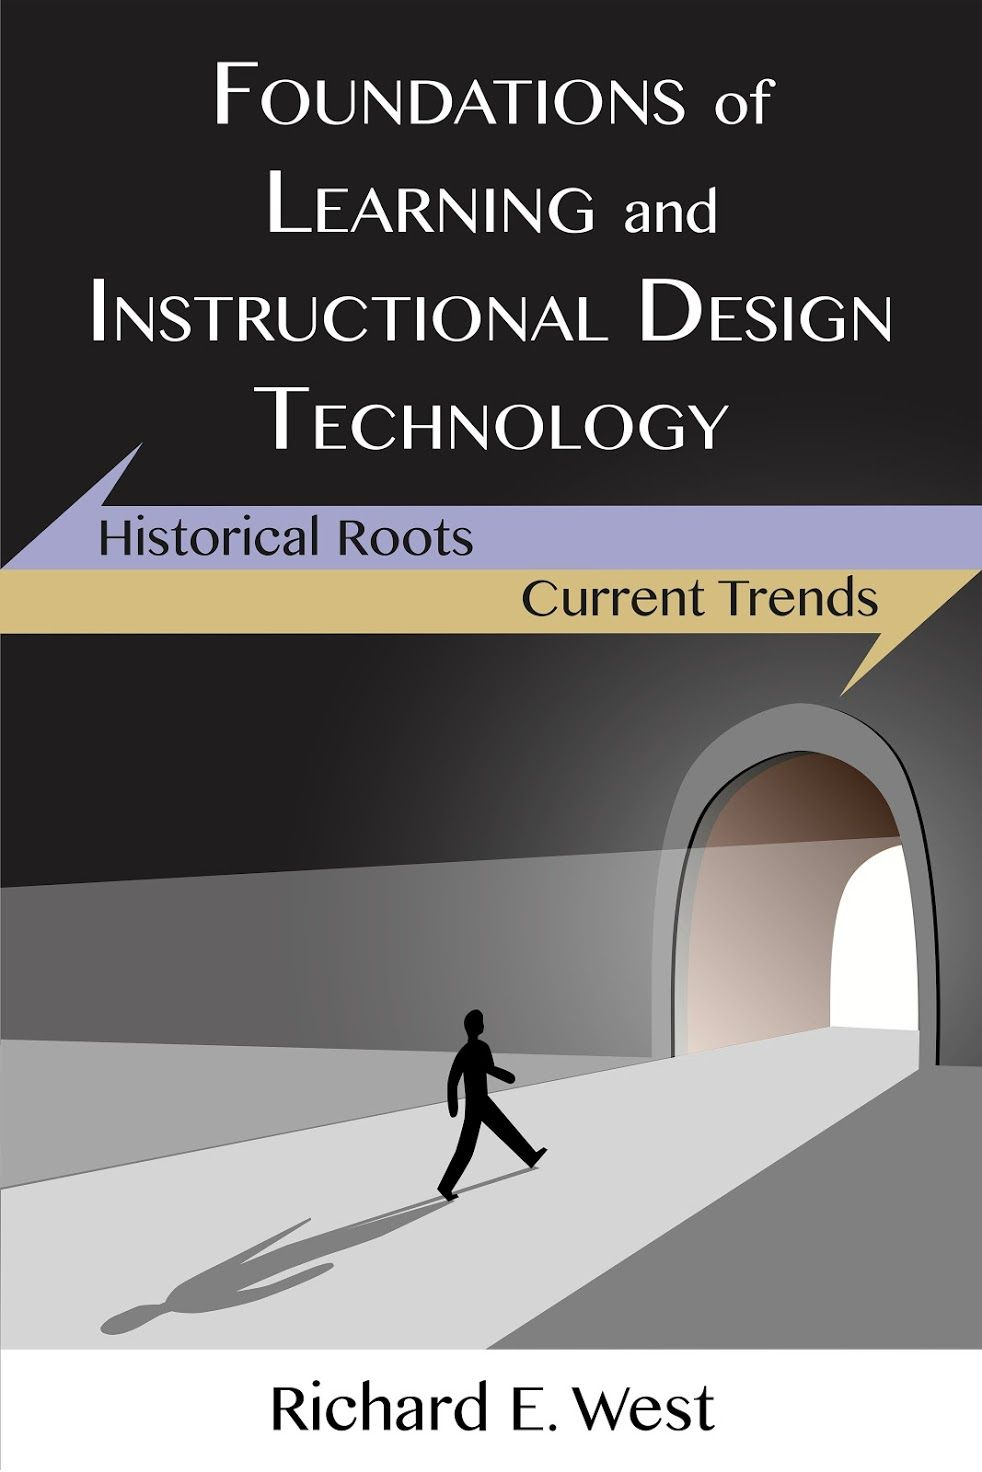 Pin By Jennifer Shields Weible On Articles Instructional Design Learning New Students